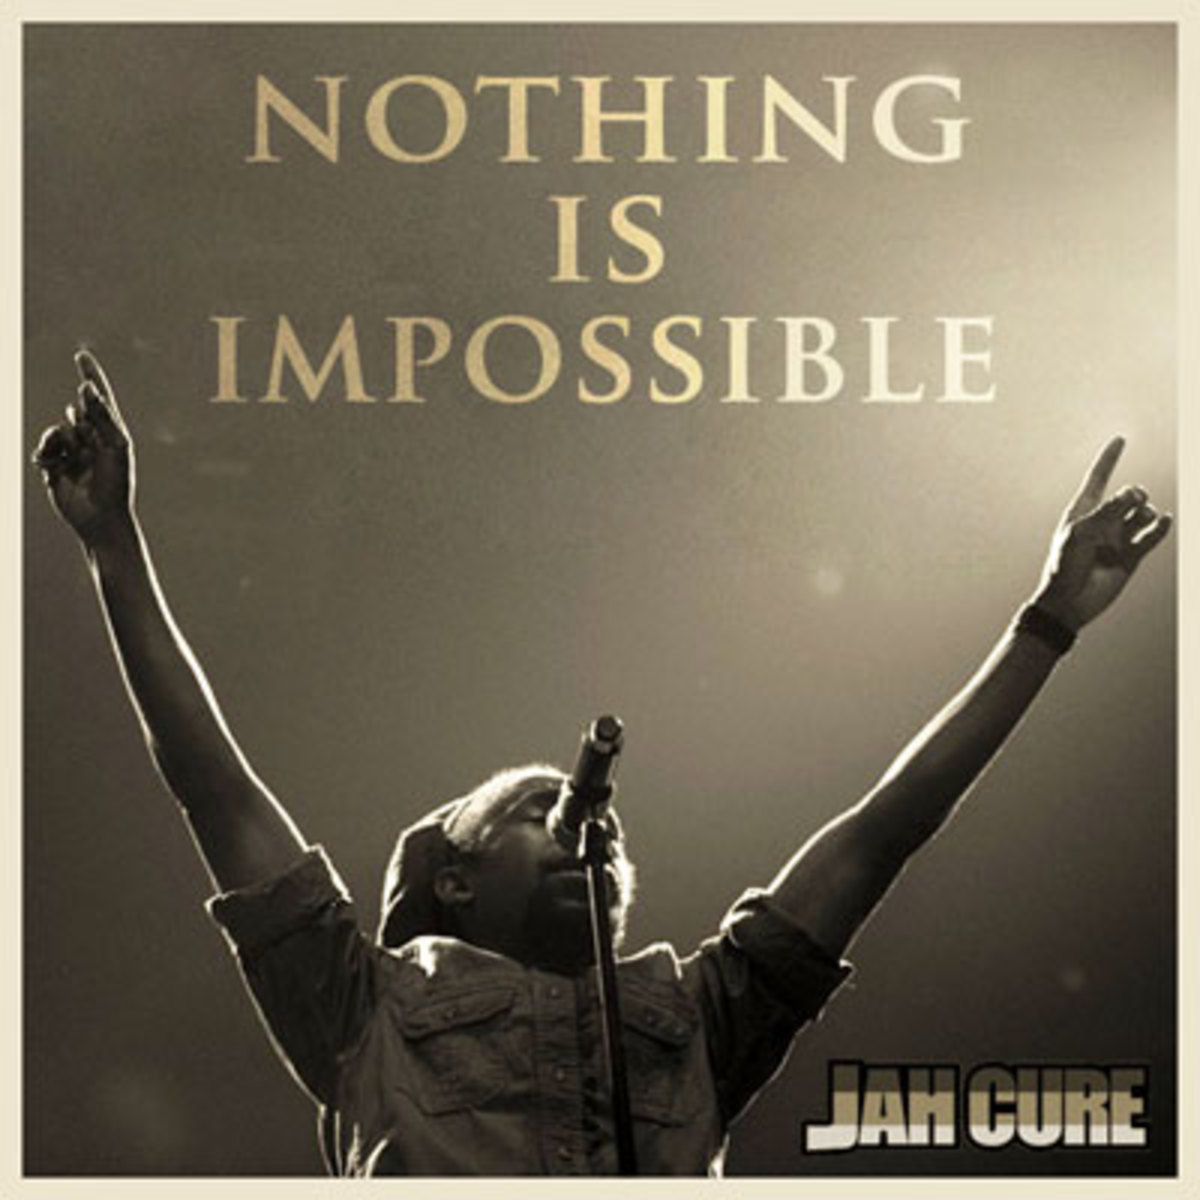 jahcure-nothingisimpossible.jpg